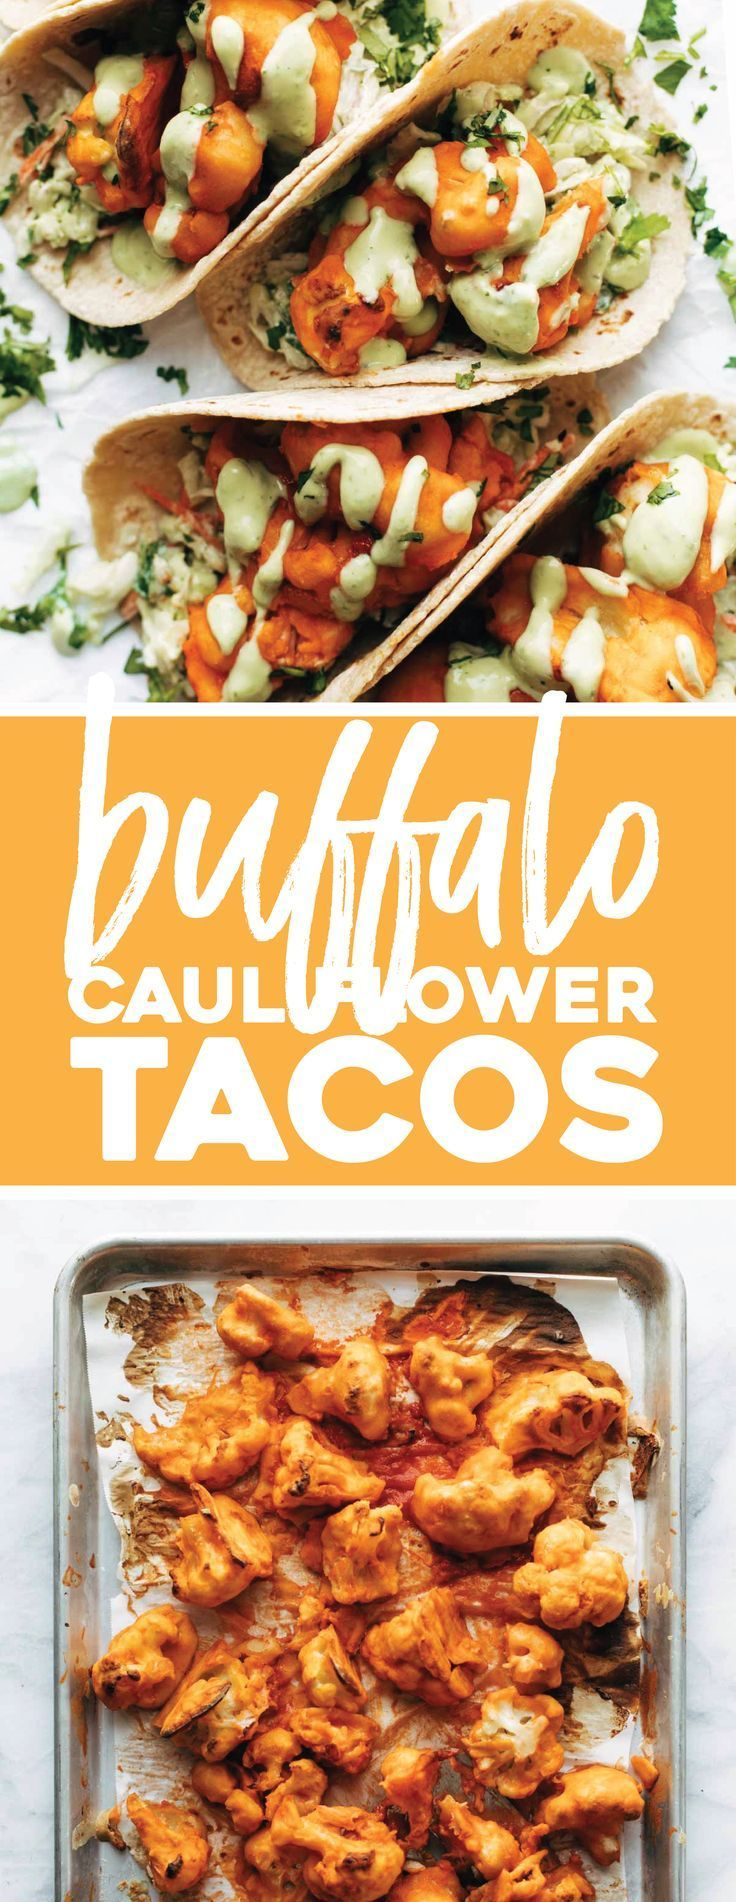 OKAY THESE TACOS ARE SO GOOD. Buffalo Cauliflower Tacos with Avocado Crema!! Baked, not fried, and breaded in a two-ingredient batter. Crispy, tangy, fiery taco perfection. #cauliflower #vegetarian #meatless #recipe #tacos | pinchofyum.com